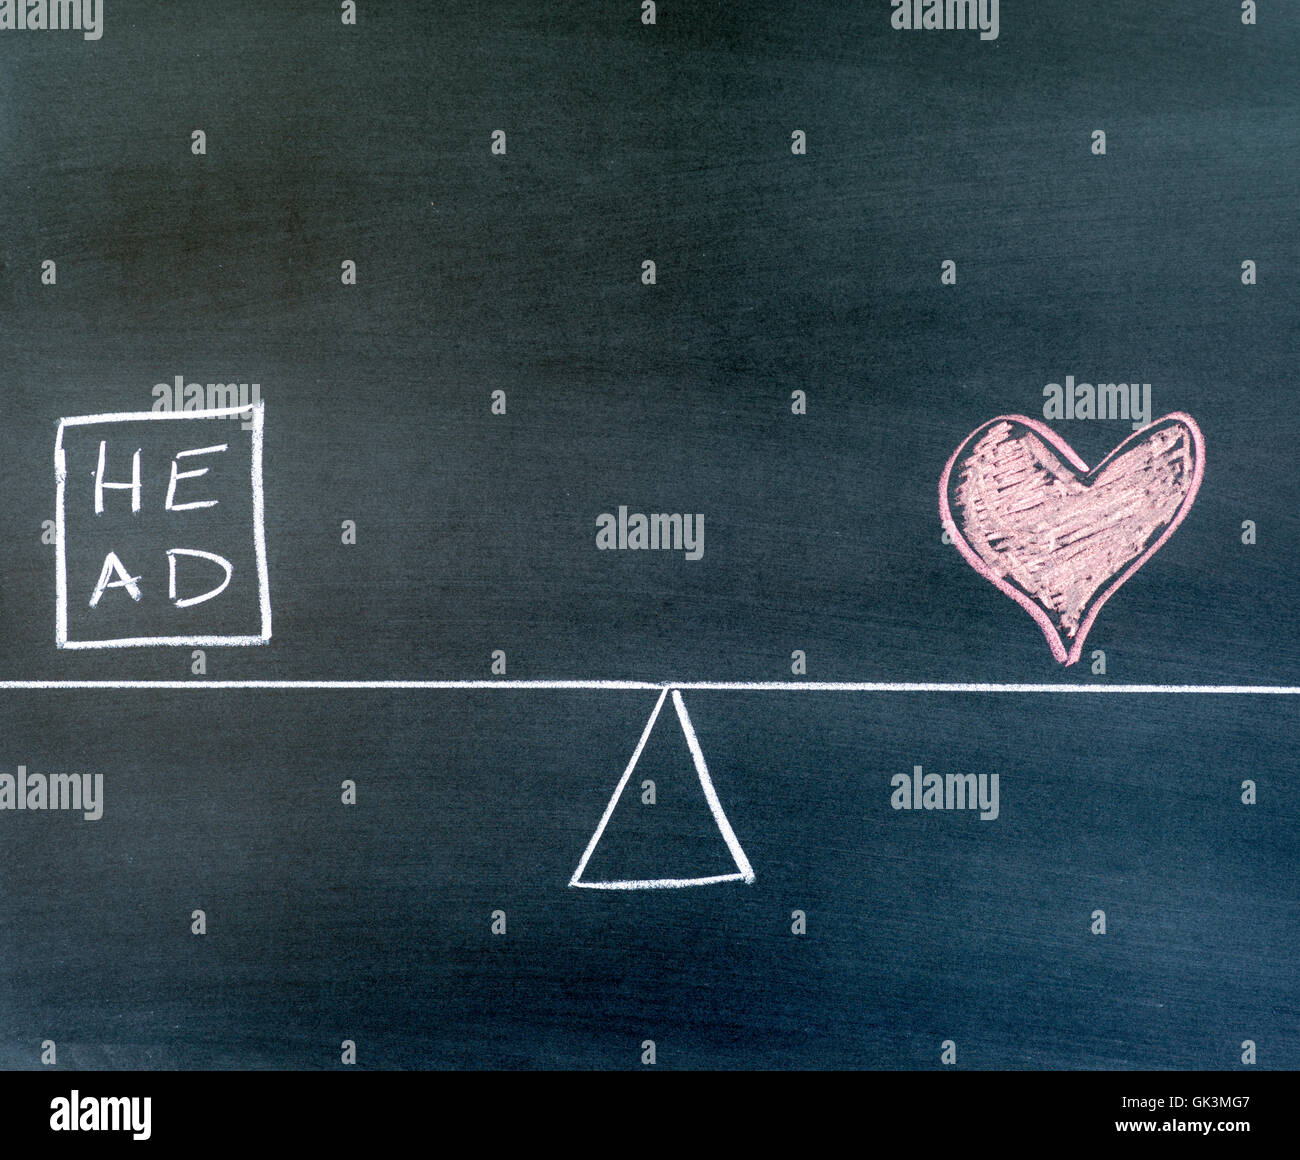 head and heart symbols drawn on a chalkboard, balance scale in equilibrium. - Stock Image